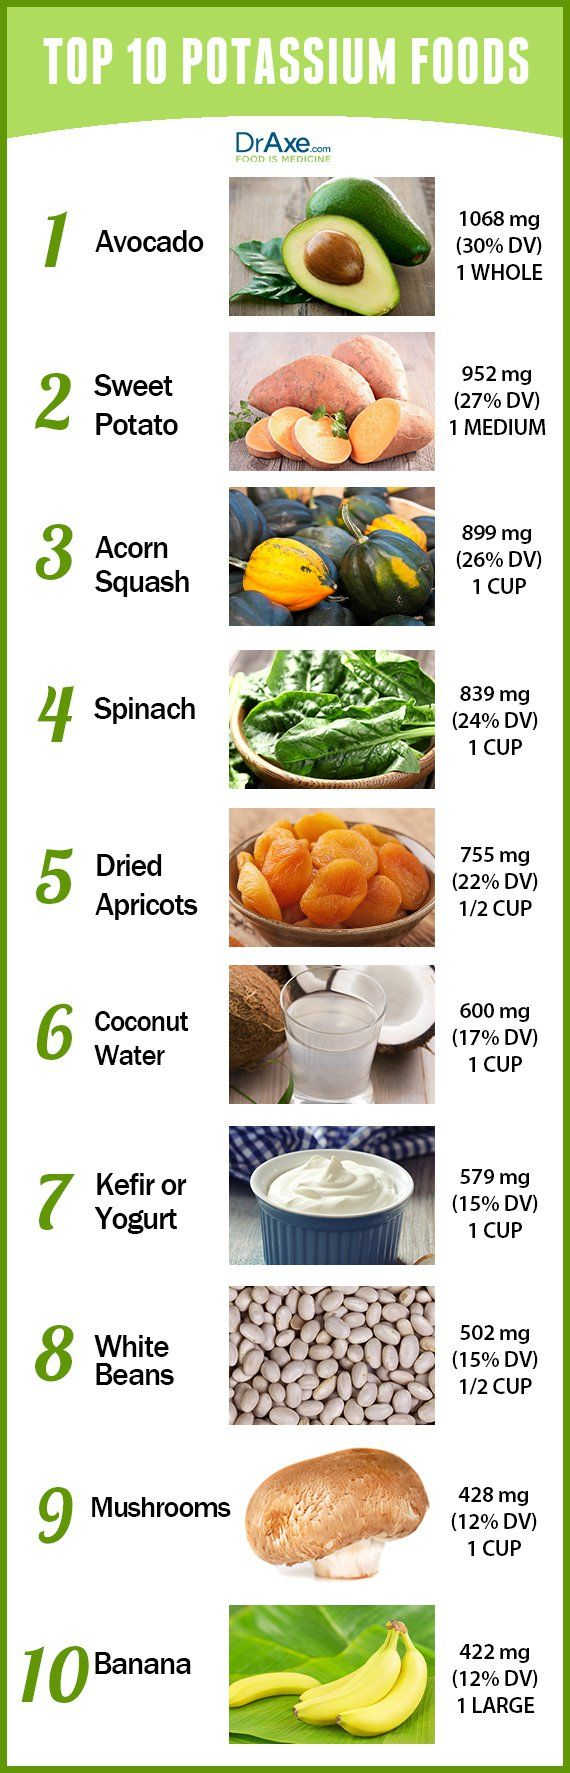 Top 10 Potassium Rich Foods - DrAxe.com foods that help reduce blood pressure